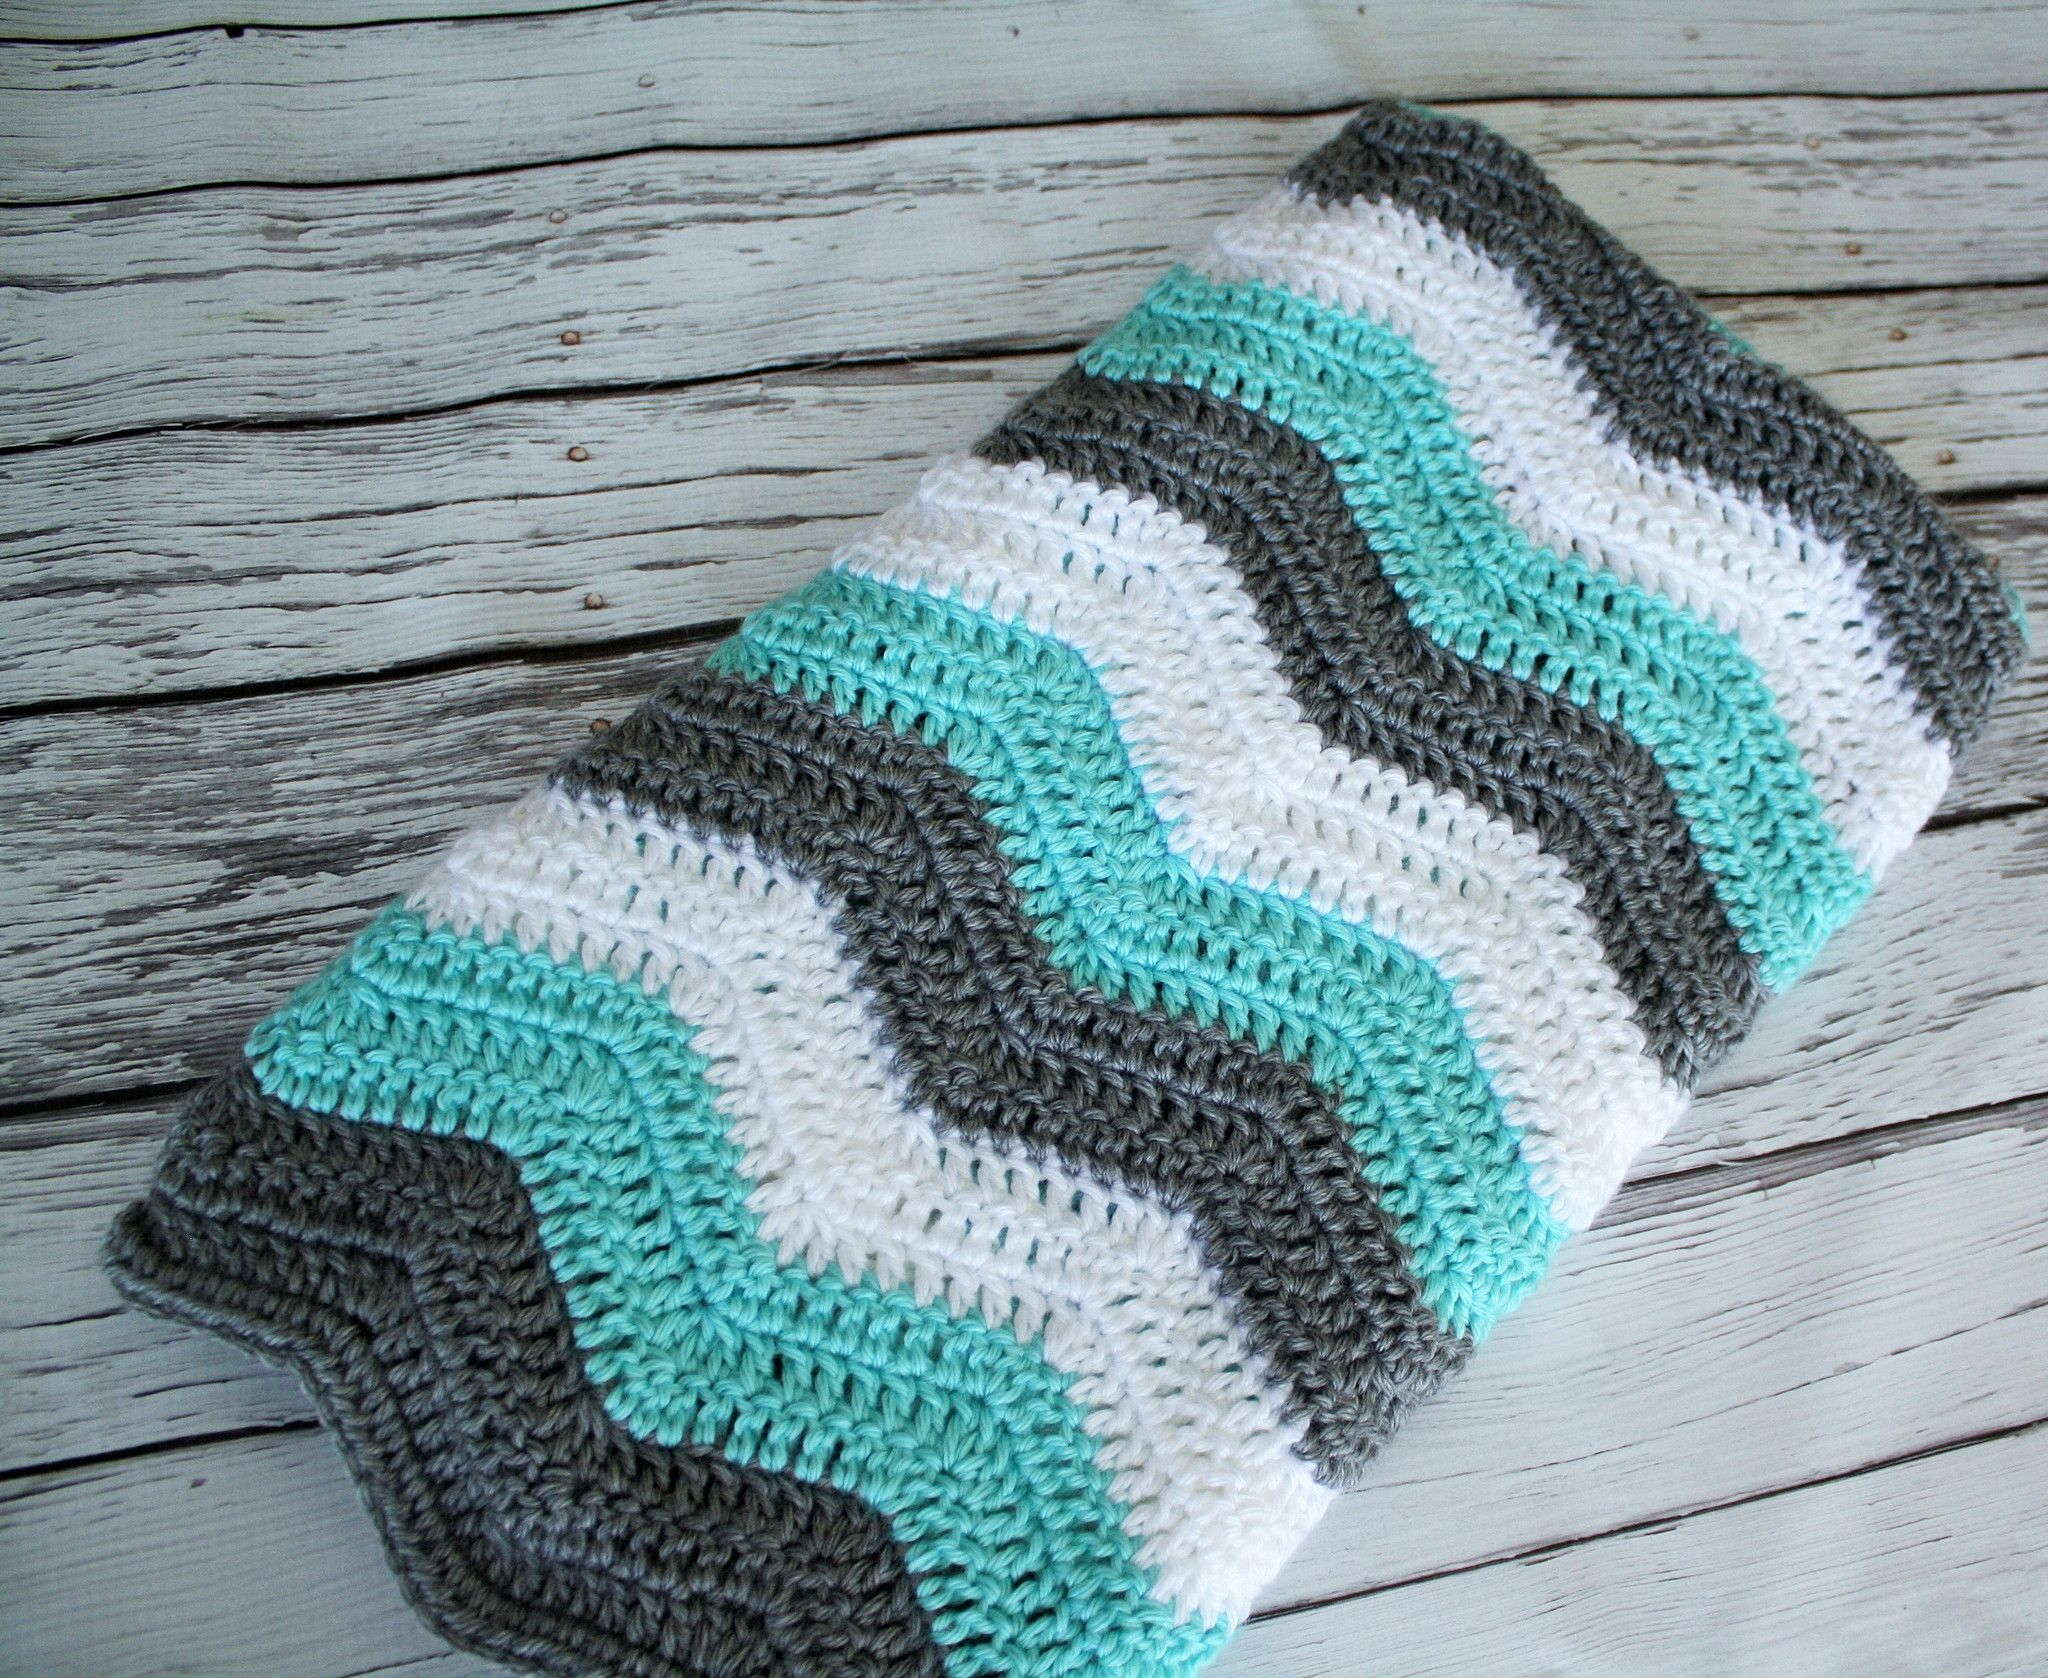 Teal, Grey and White Chevron Blanket | Häkeldecke und Häkeln